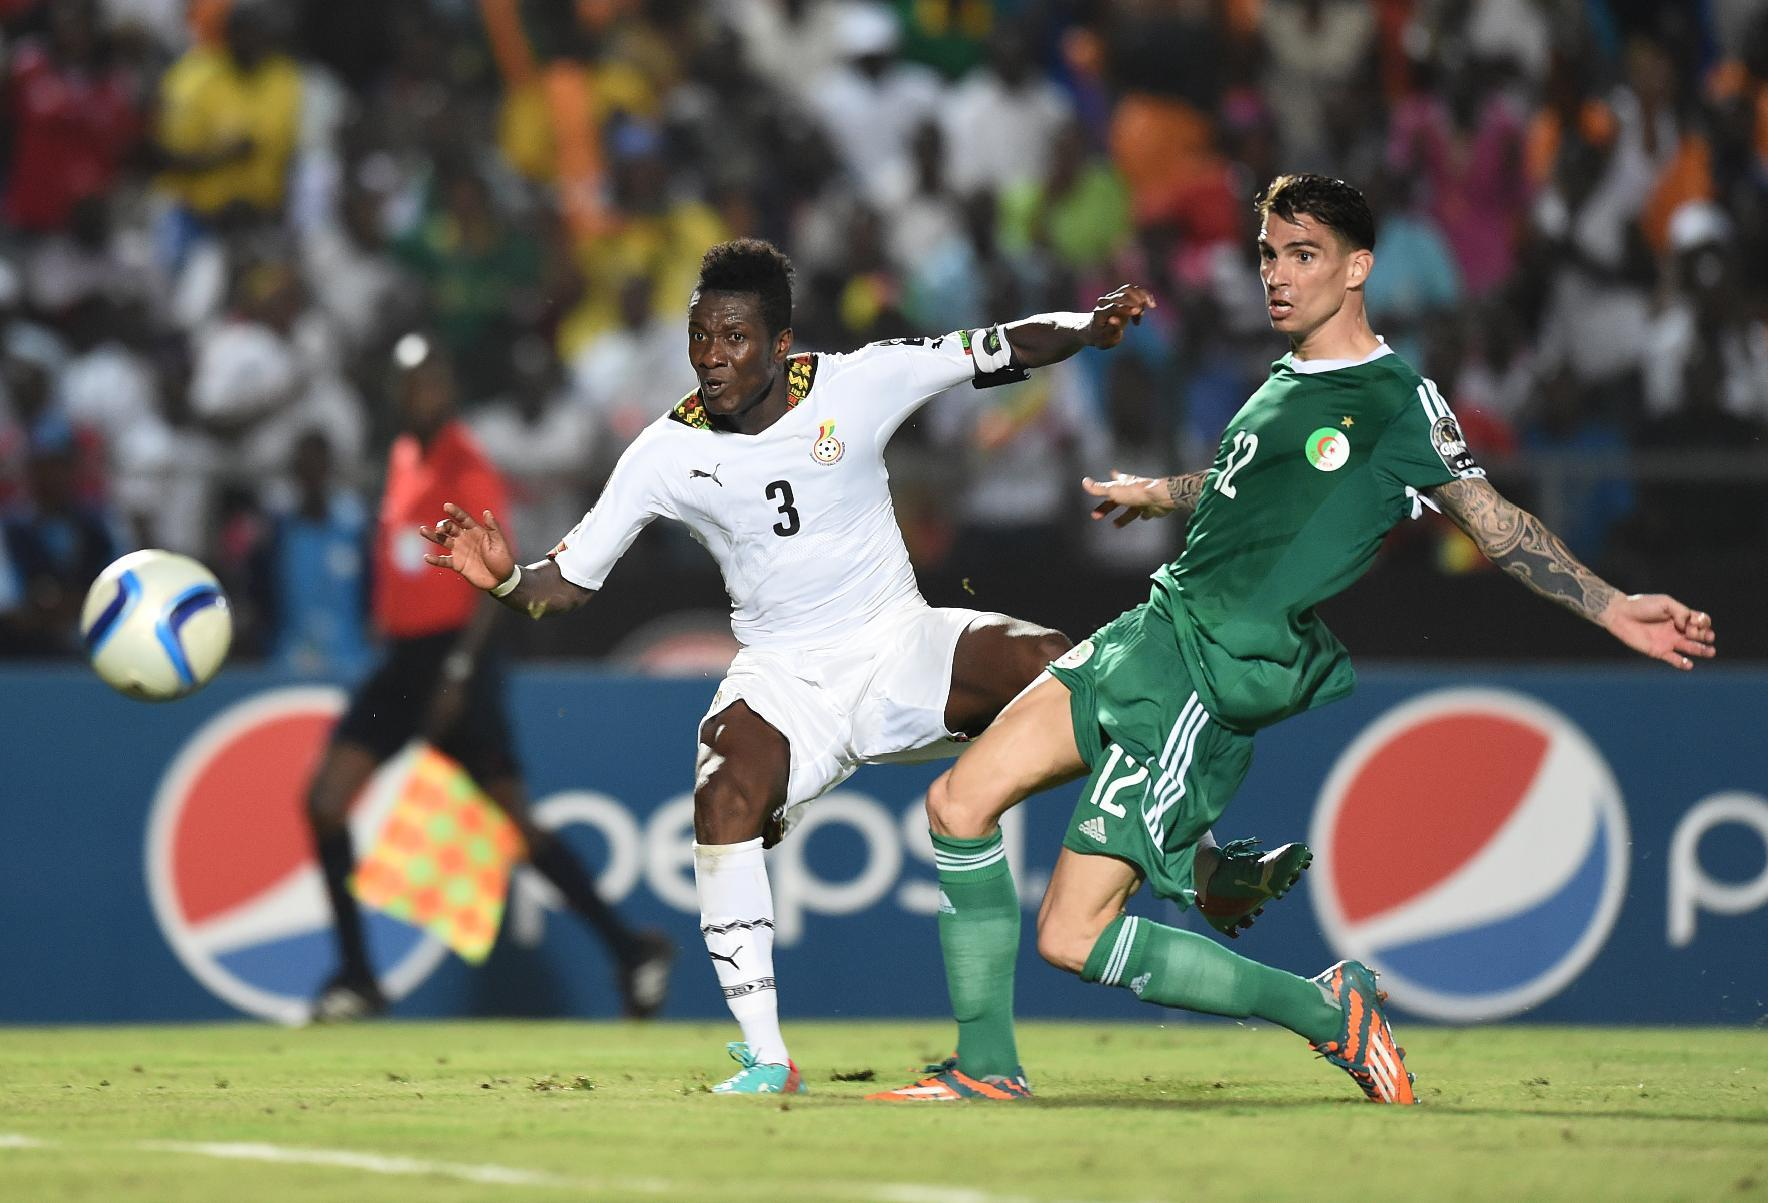 Ghana take aim at South Africa after big Cup win